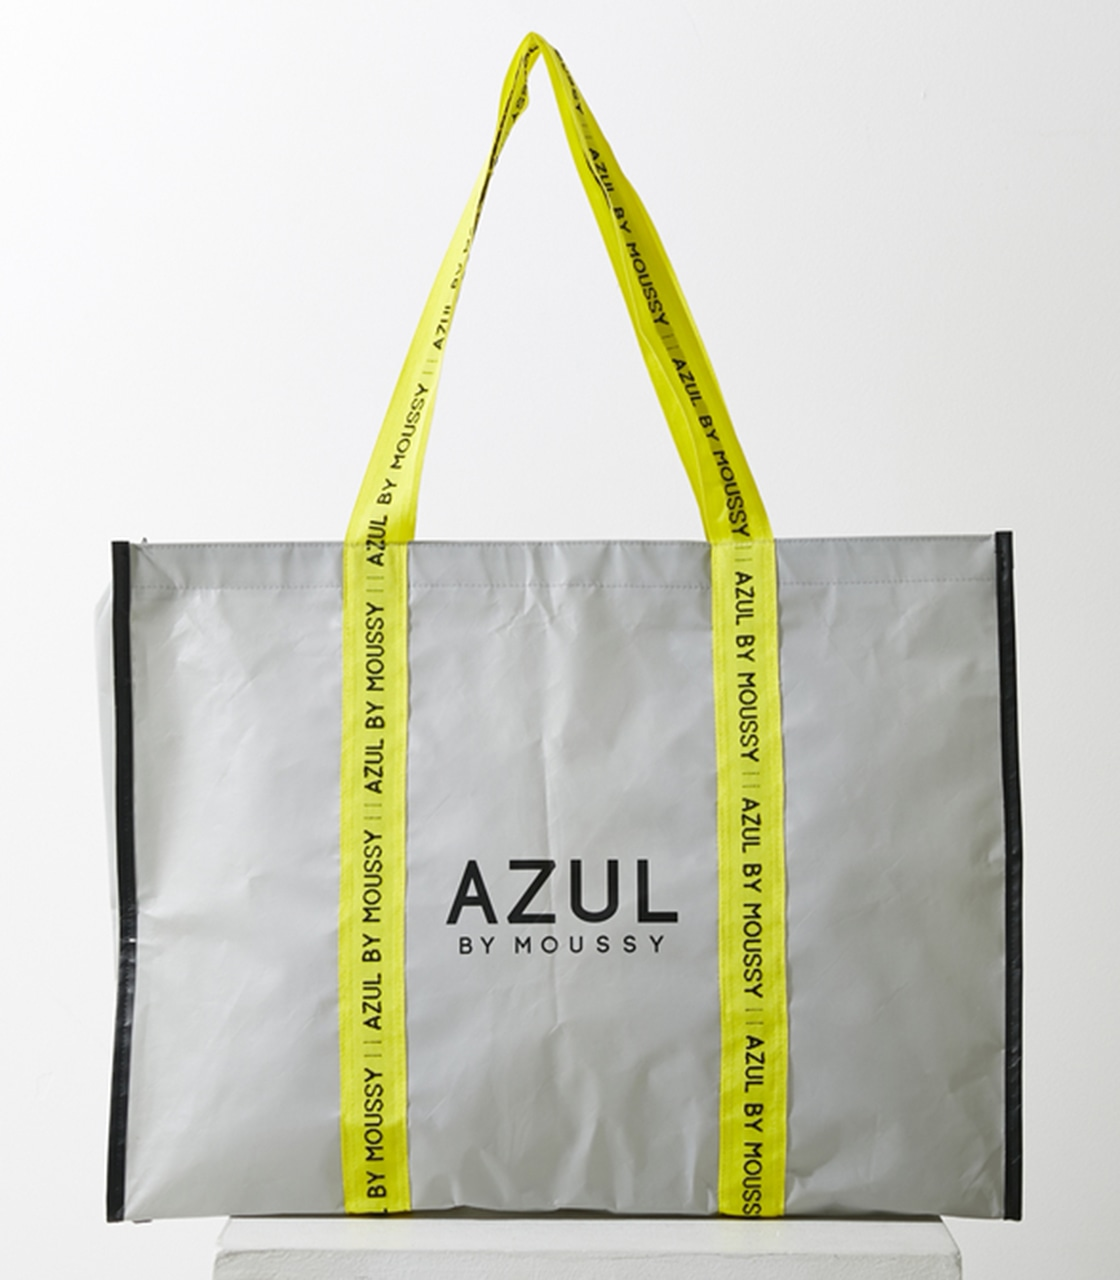 【AZUL BY MOUSSY】2019 NEW YEAR BAG LD10000 詳細画像 CLR 1